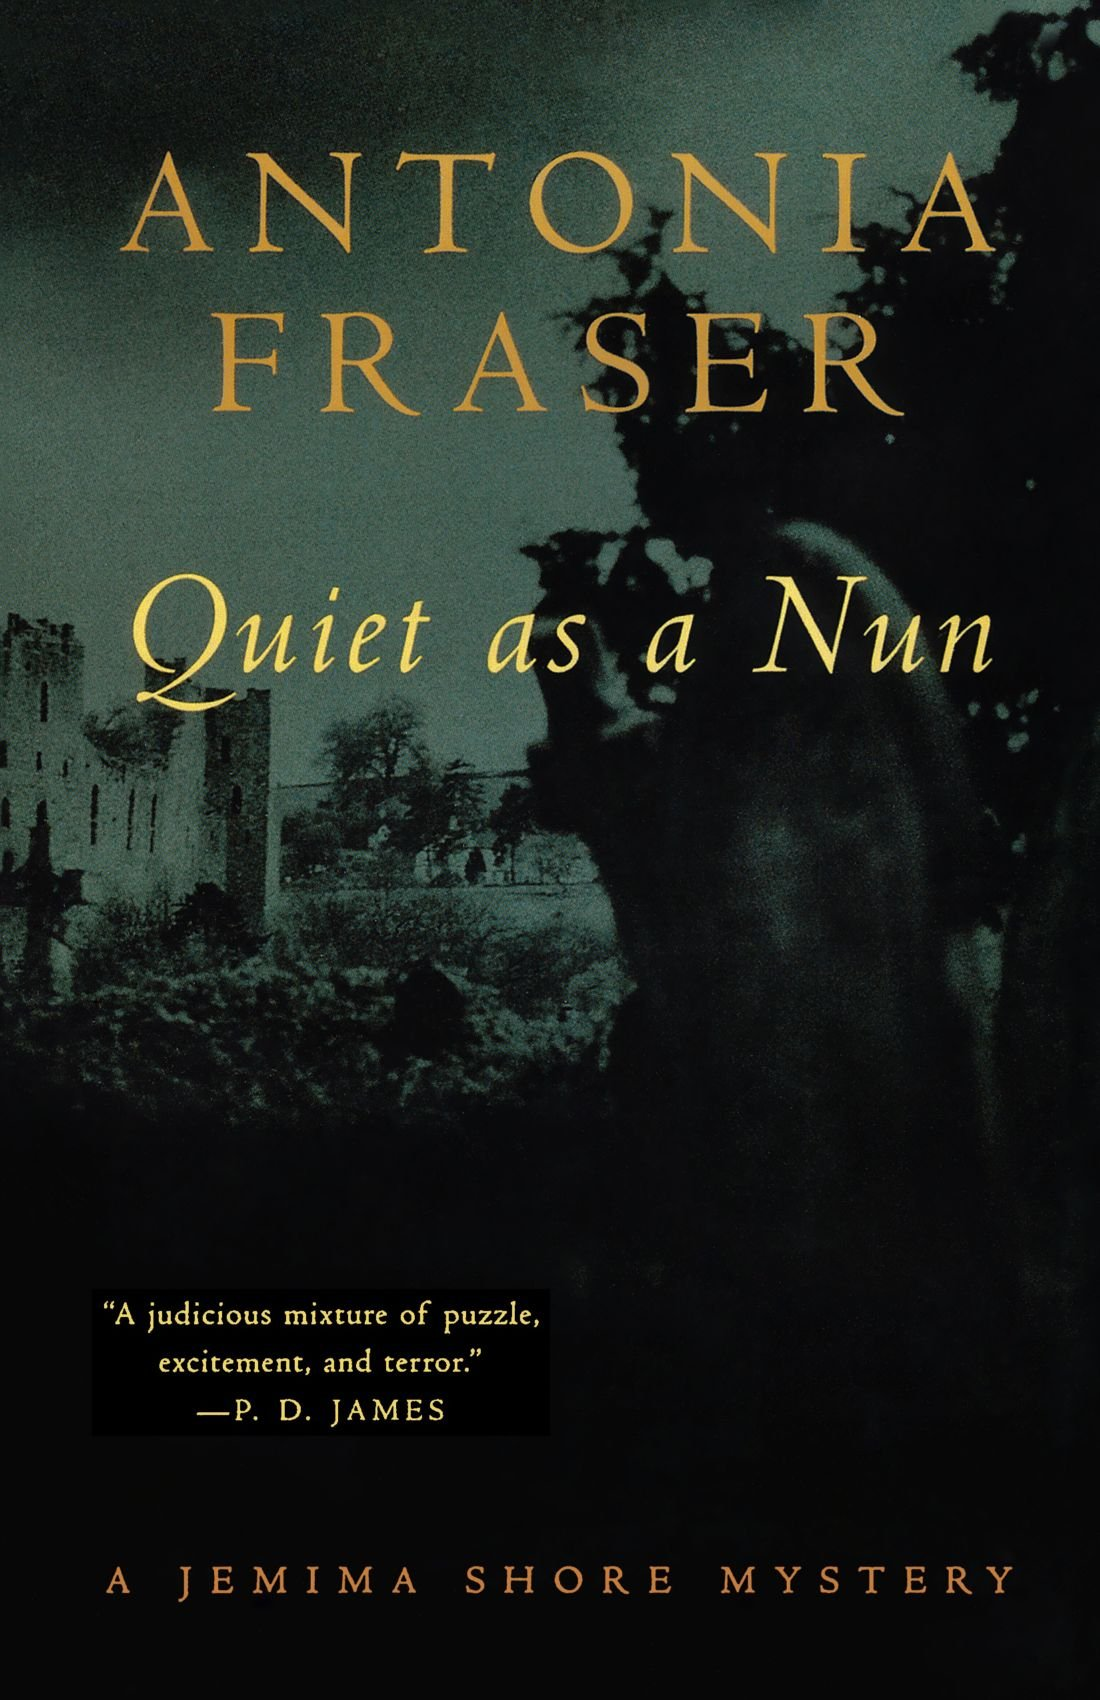 Quiet As A Nun: A Jemima Shore Mystery (jemima Shore Mysteries): Antonia  Fraser: 9780393318227: Amazon: Books